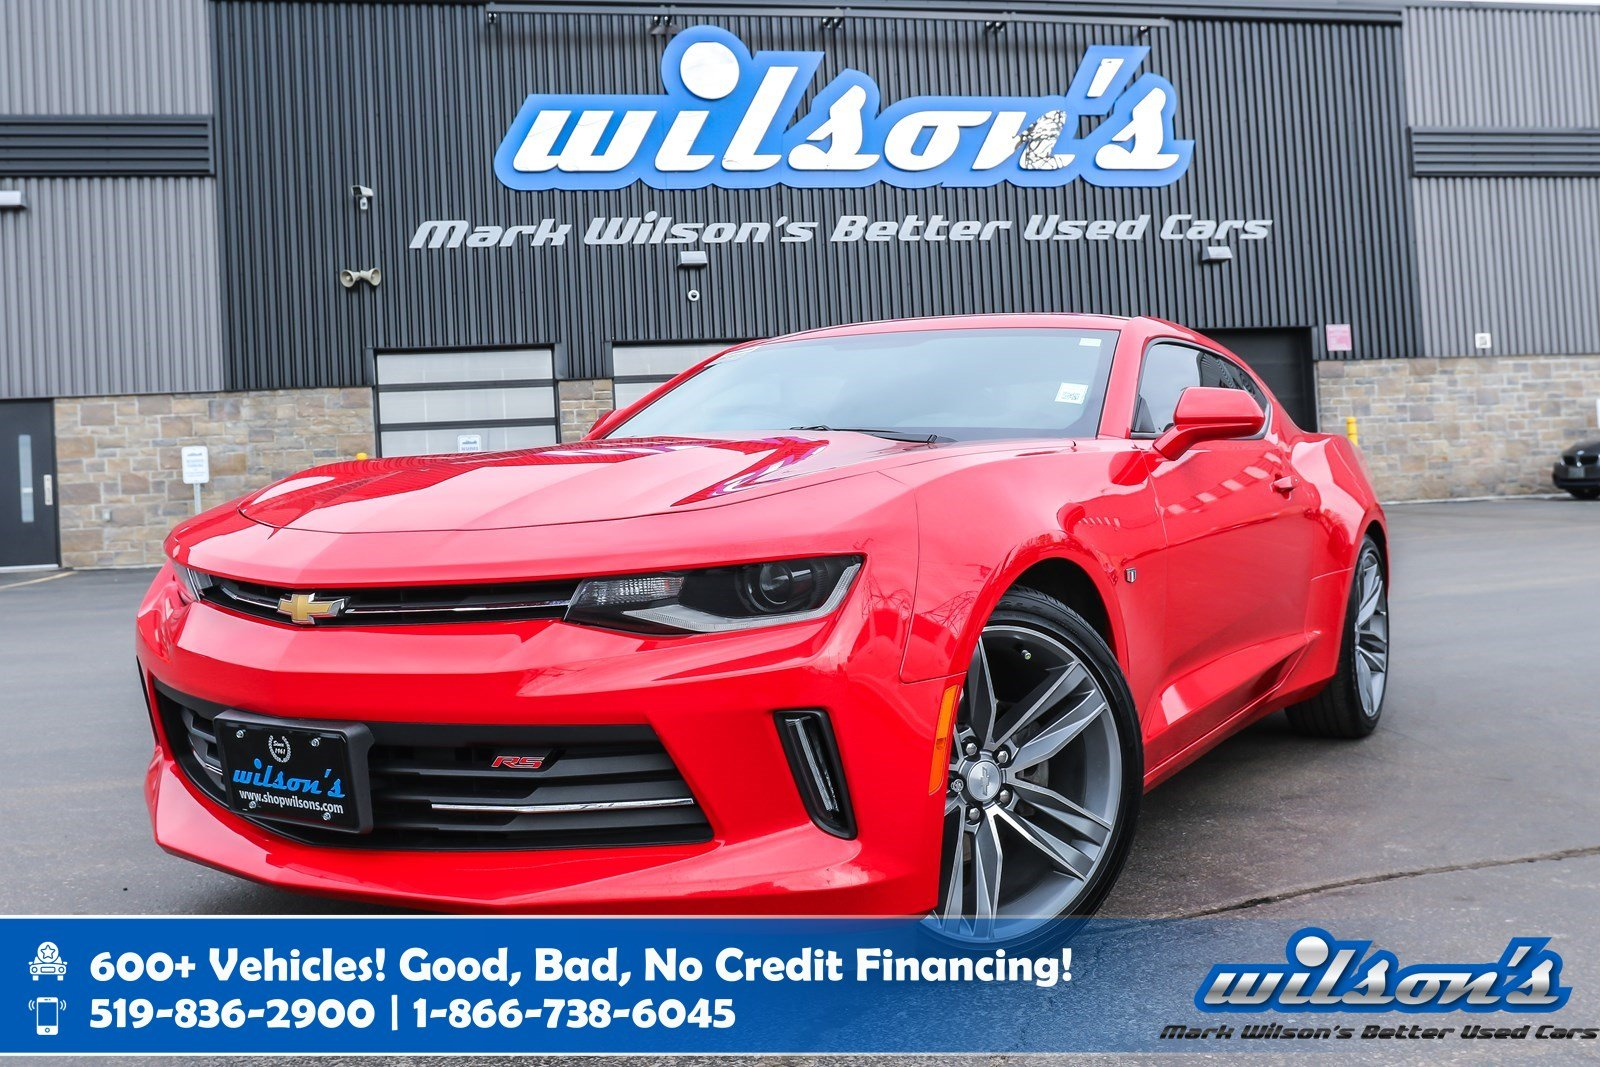 Certified Pre-Owned 2016 Chevrolet Camaro LT W/ 1LT, 6 Speed! RS Pkg, Sunroof, Rear Camera, Bluetooth, 20